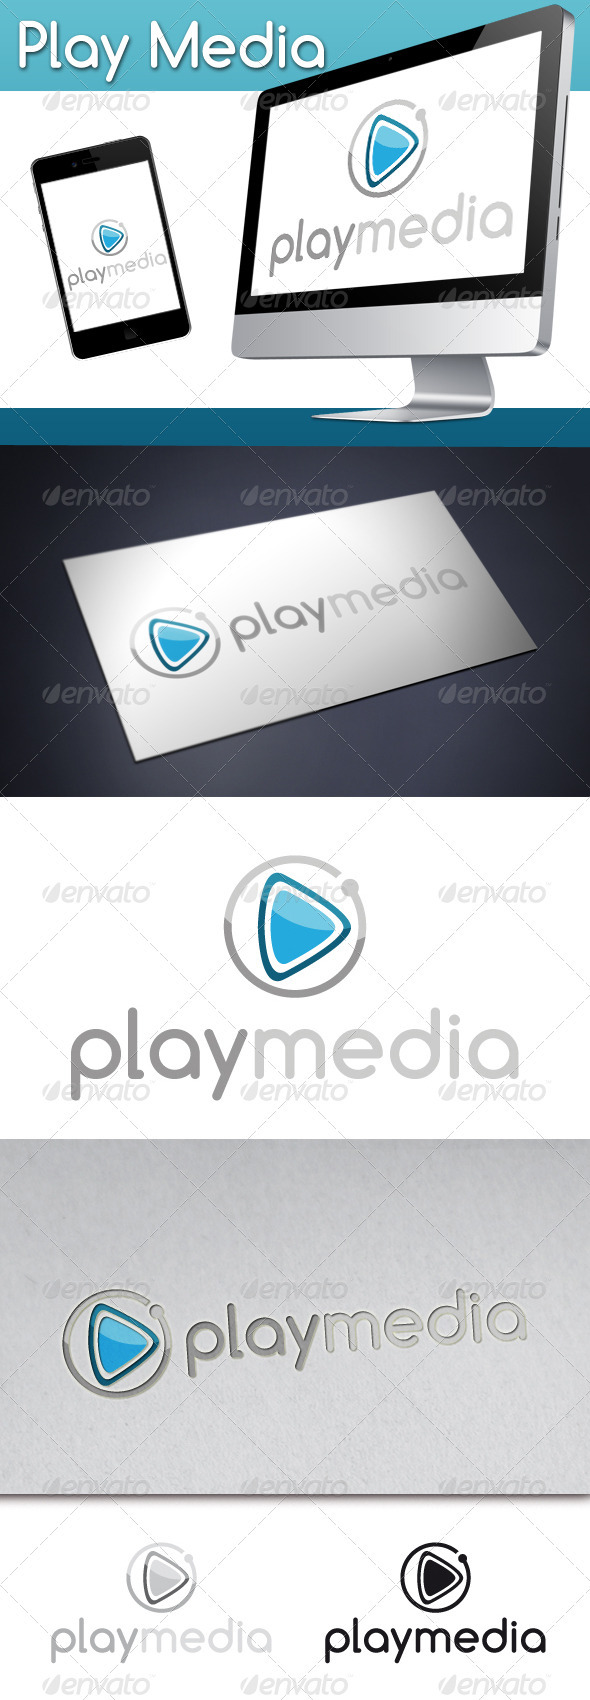 Play Media Logo 1 - Symbols Logo Templates